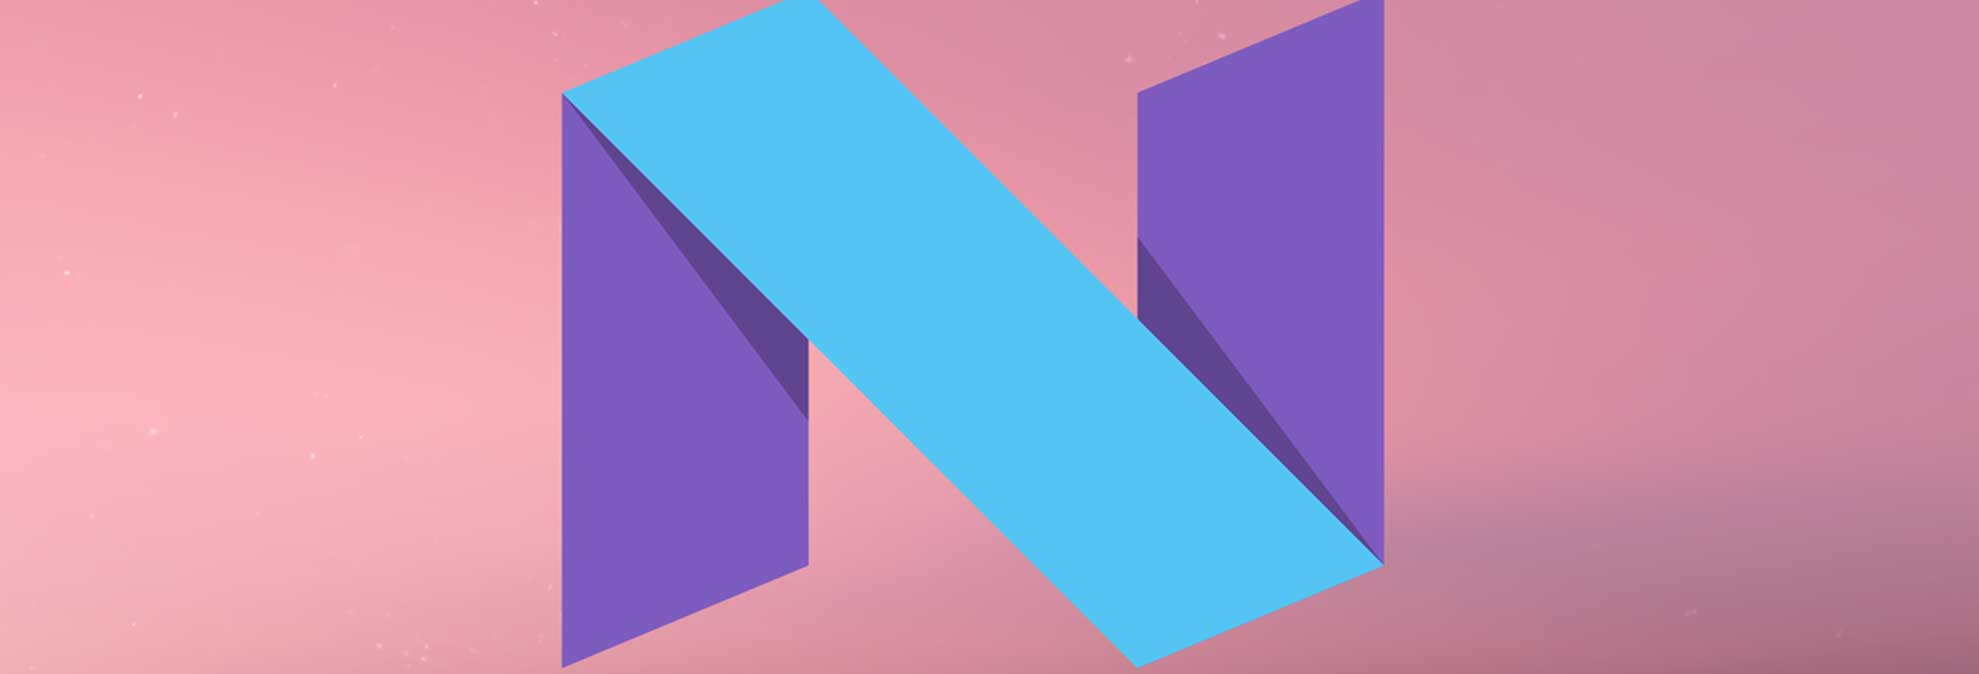 Android Nougat: What You Need to Know About the Latest Google Mobile OS